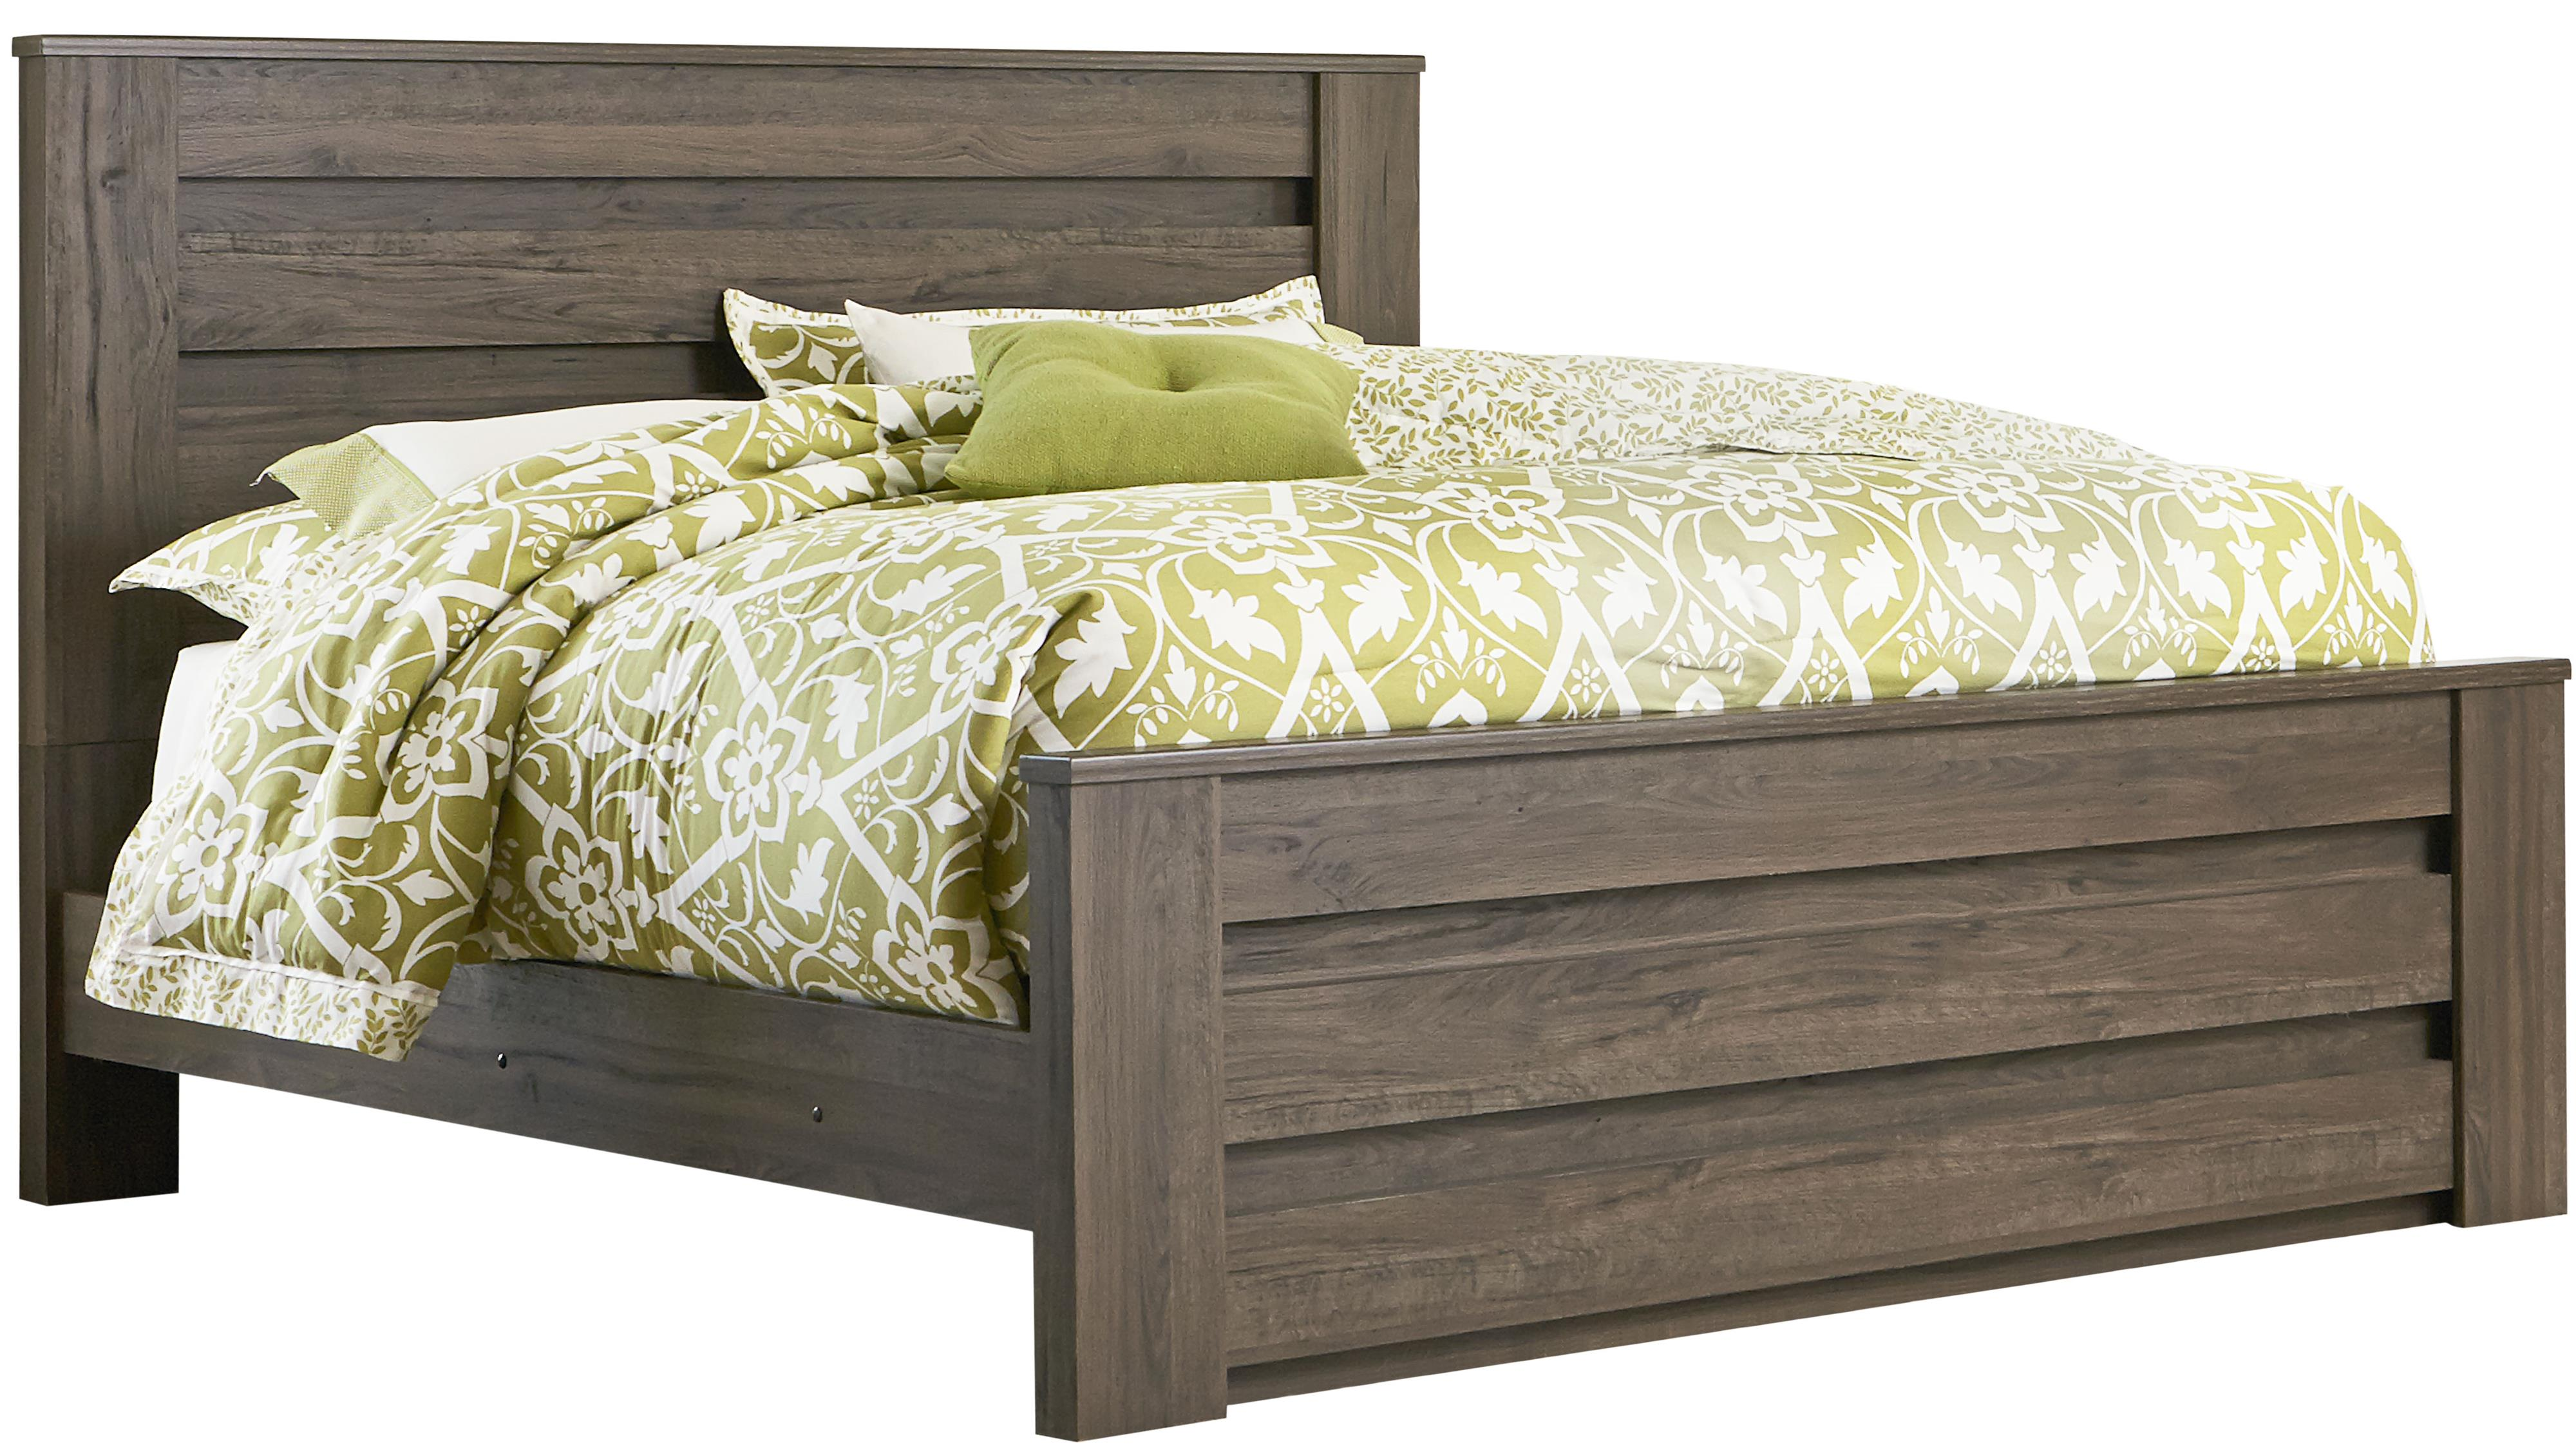 Mansion Bedroom Furniture King Mansion Bed With Thick Panels By Standard Furniture Wolf